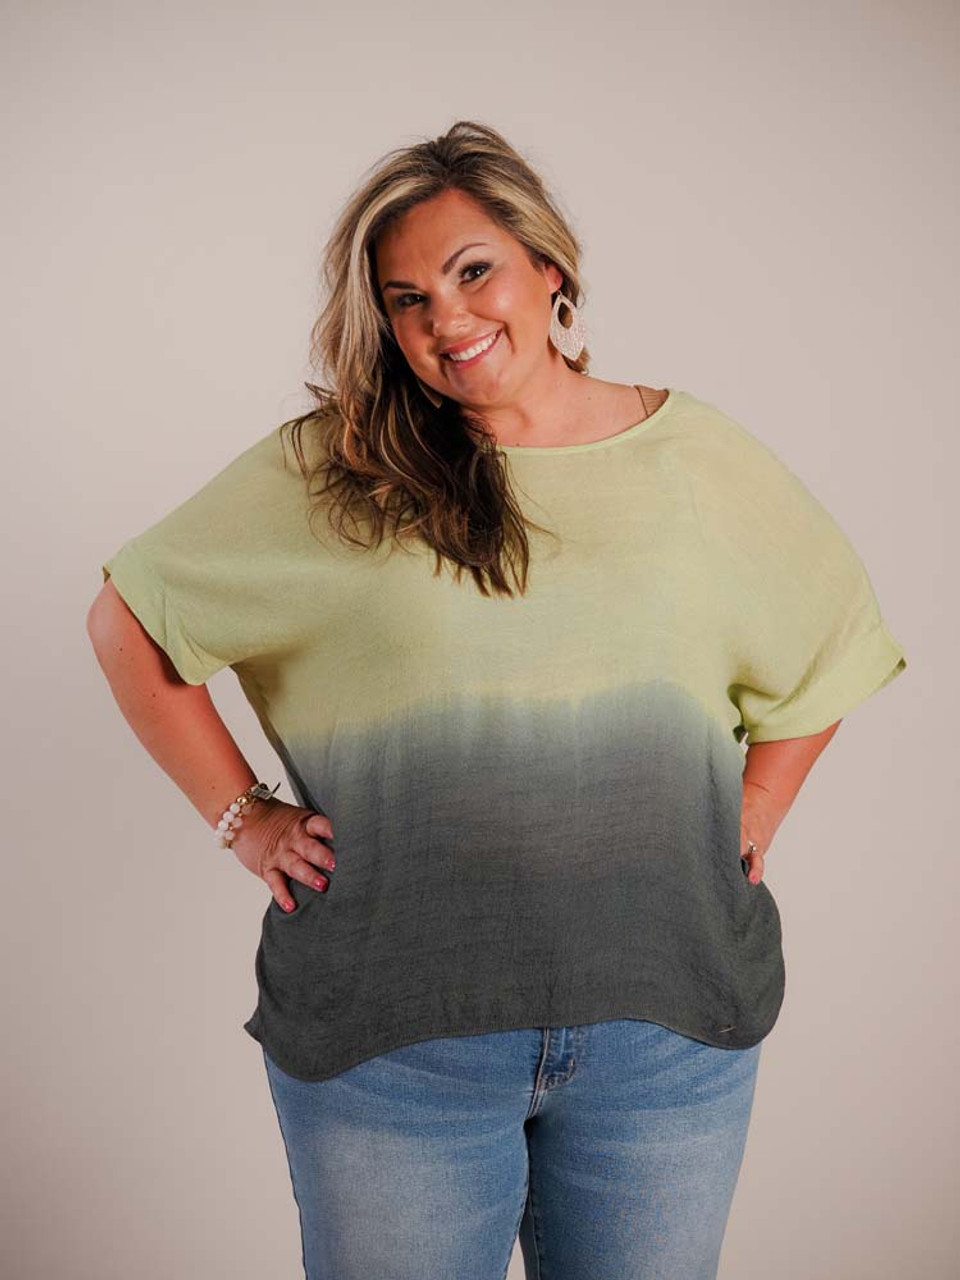 This sheer and breezy blouse has a round neck, short sleeves, and a vertical seam detail down the middle of the back